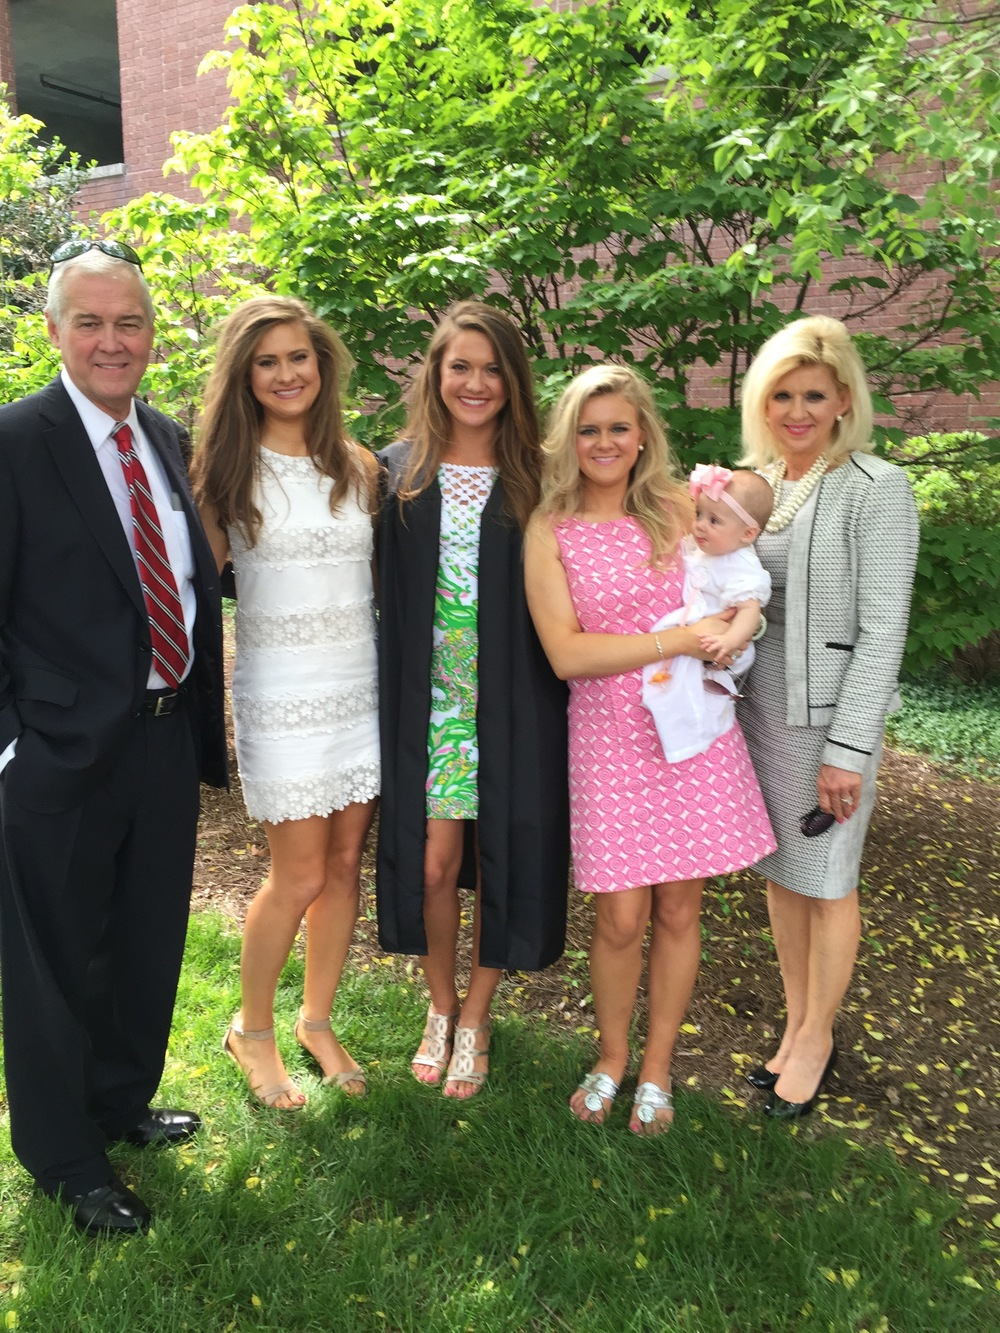 Graduation Day! One of the biggest accomplishments in my life was graduating from Belmont University with a bachelors in Business Management surrounded by my family! Left to right: Dad, Abby, Me, Jordan, Claire Elizabeth, and Mom.